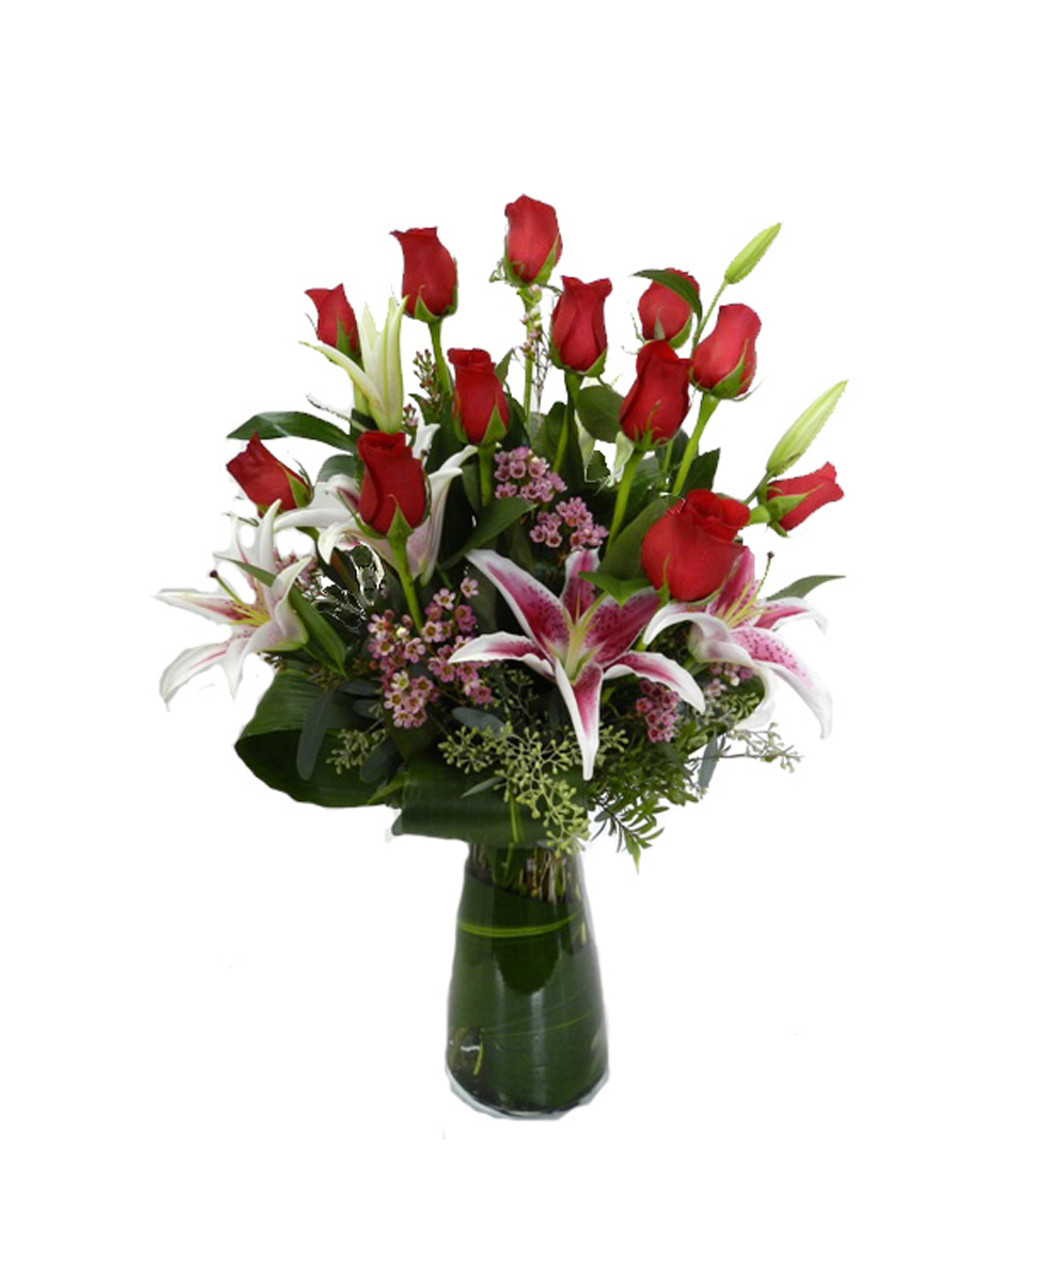 Roses Choice Roses Lilies Rose Blossom